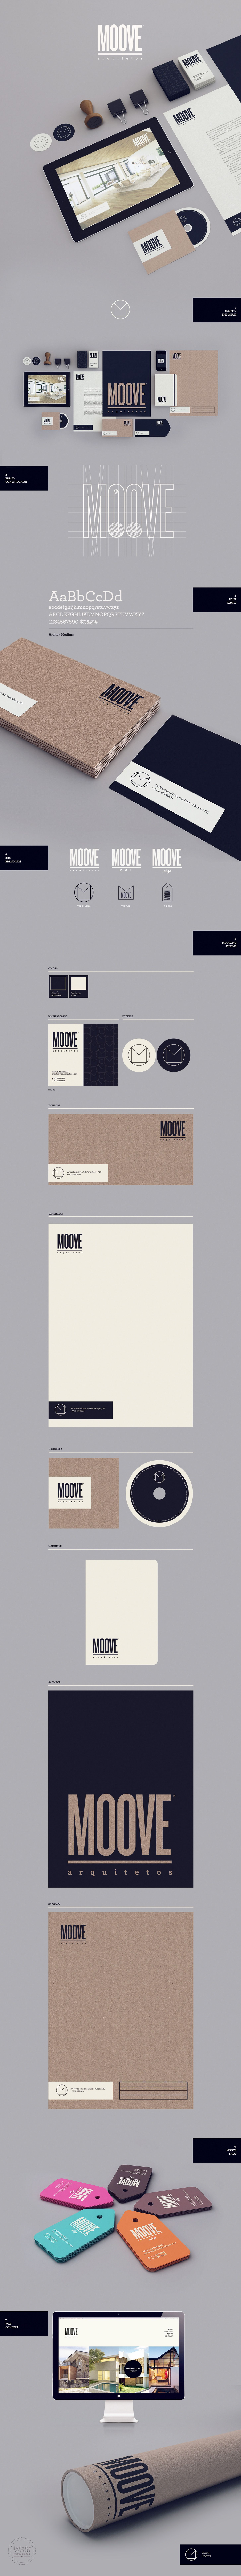 Moove Identity Design  We created a brand that refers to the constructivist movement, but shows a modernity in its rounded corners. Besides the off white and black, we used the kraft to break the monotony of colors, making it eco-friendly as well.